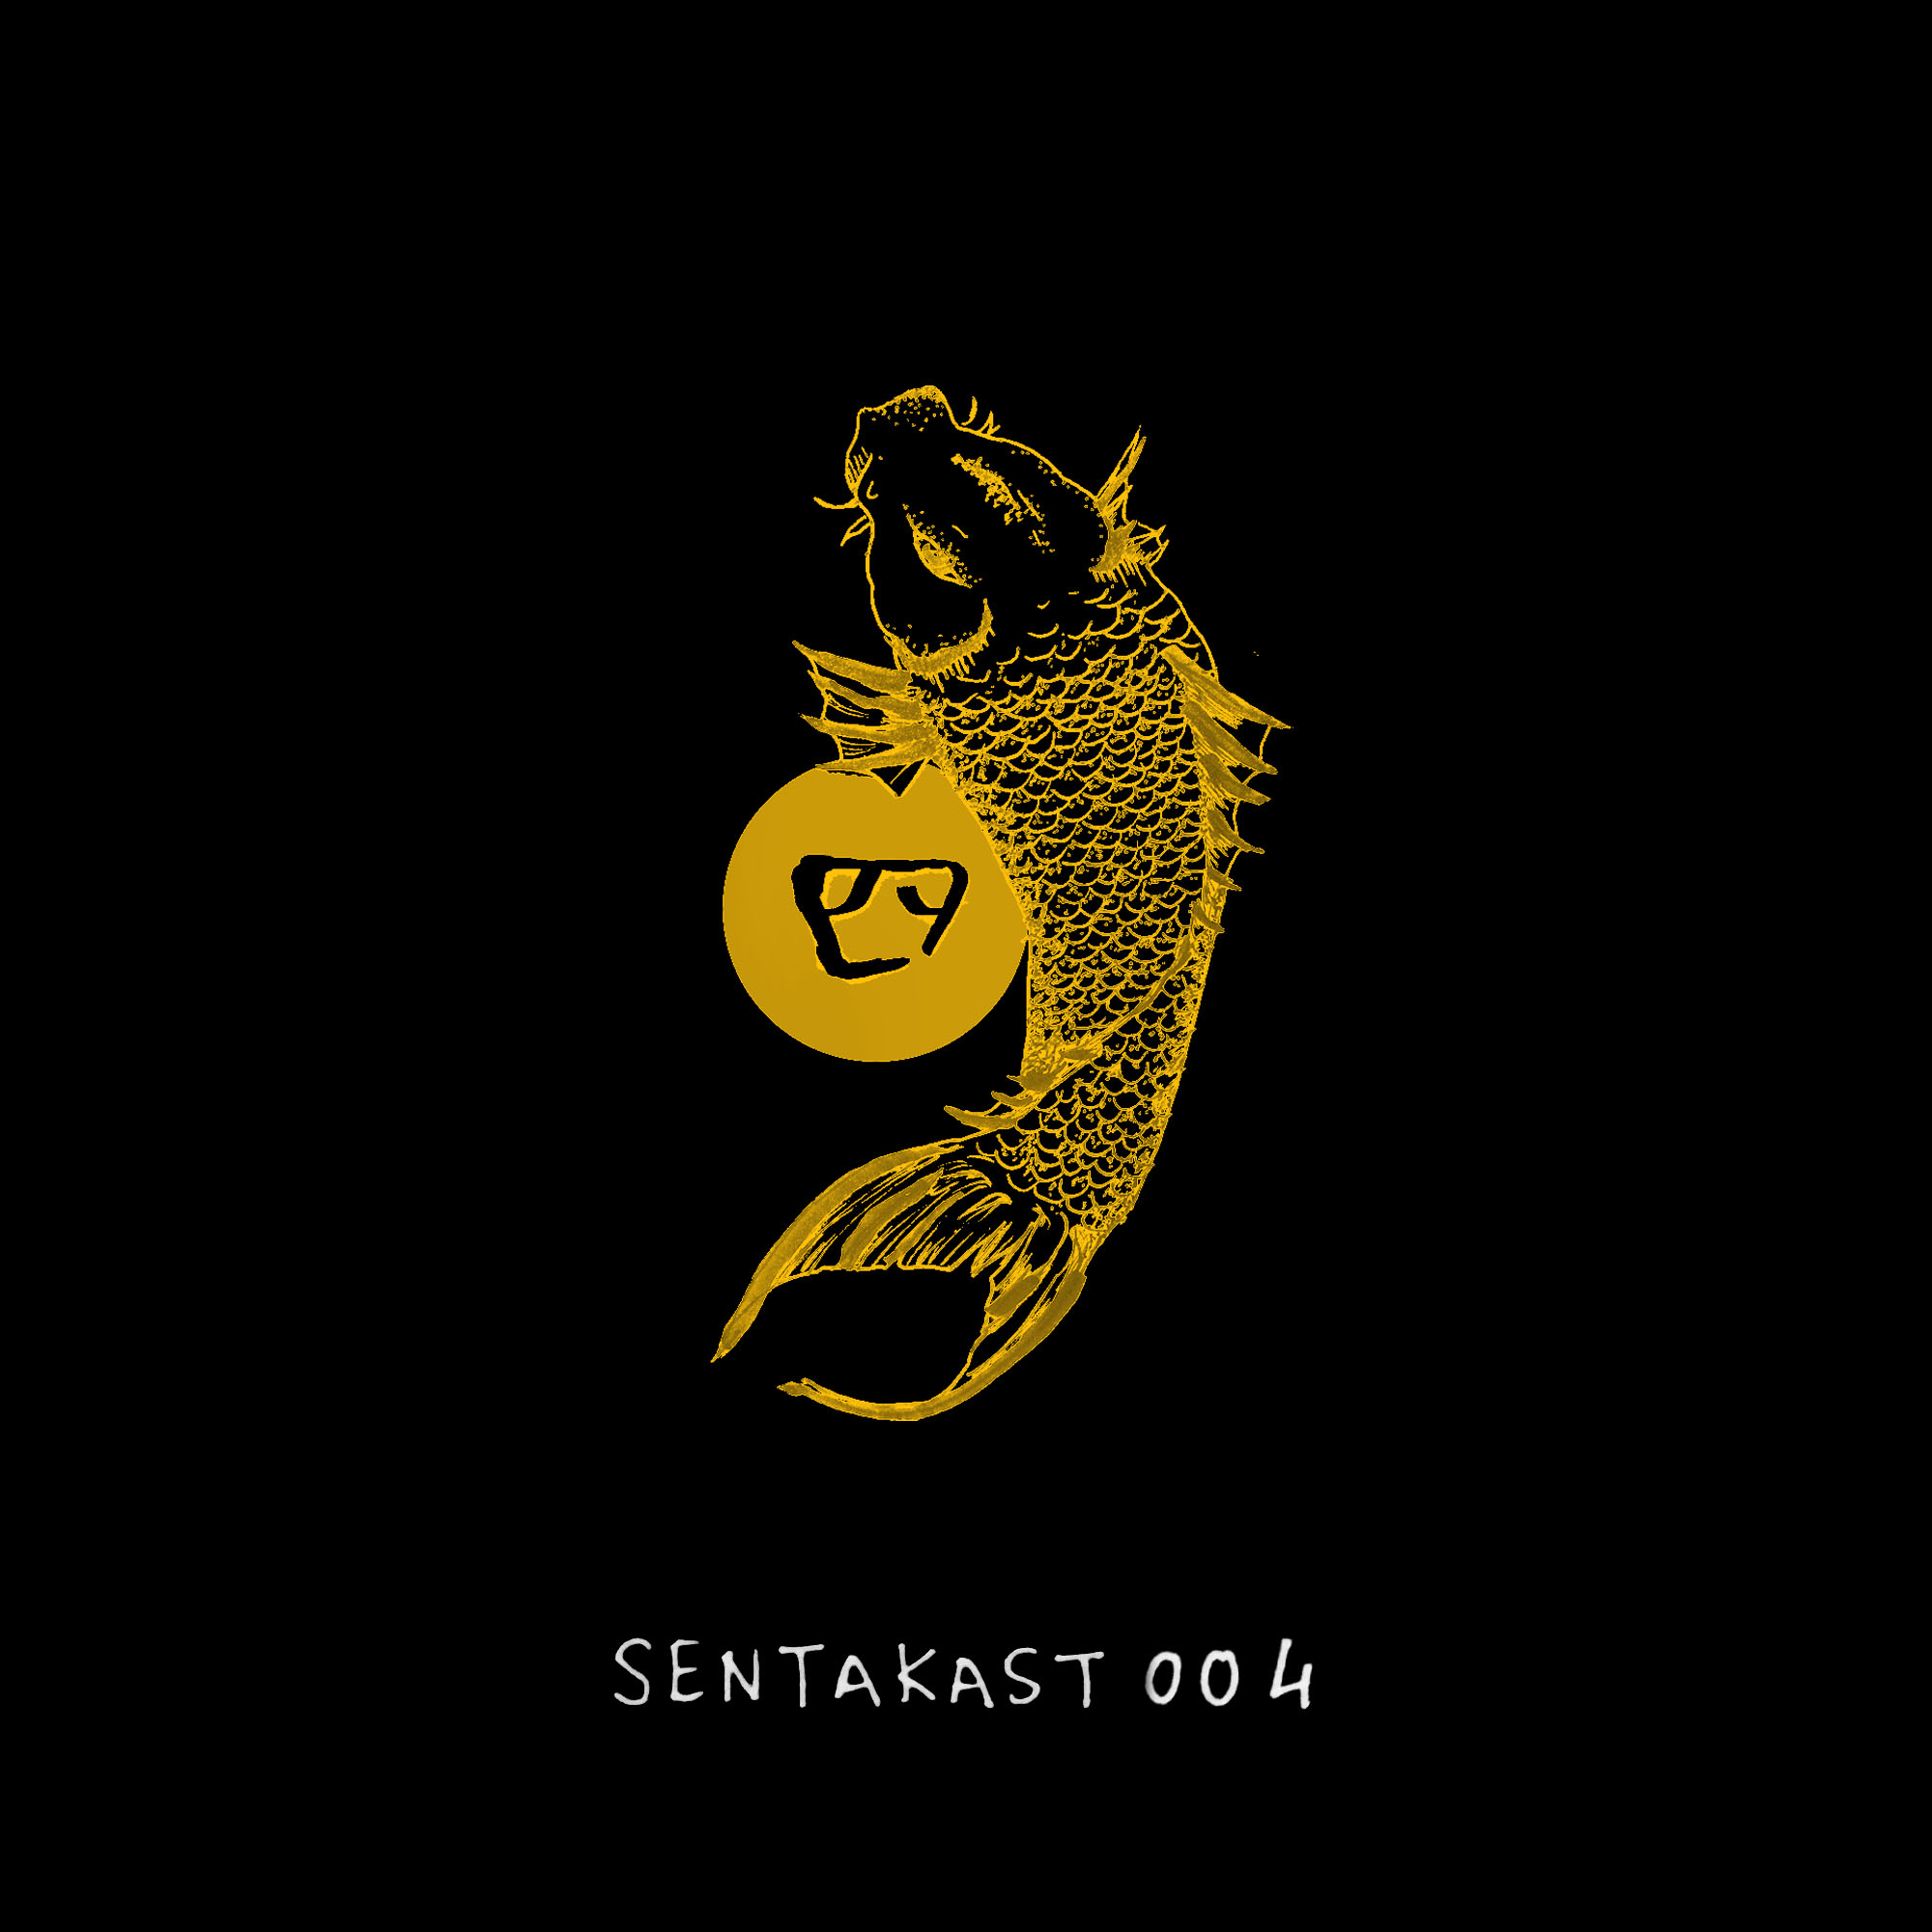 Sentakast004_Colour.jpg